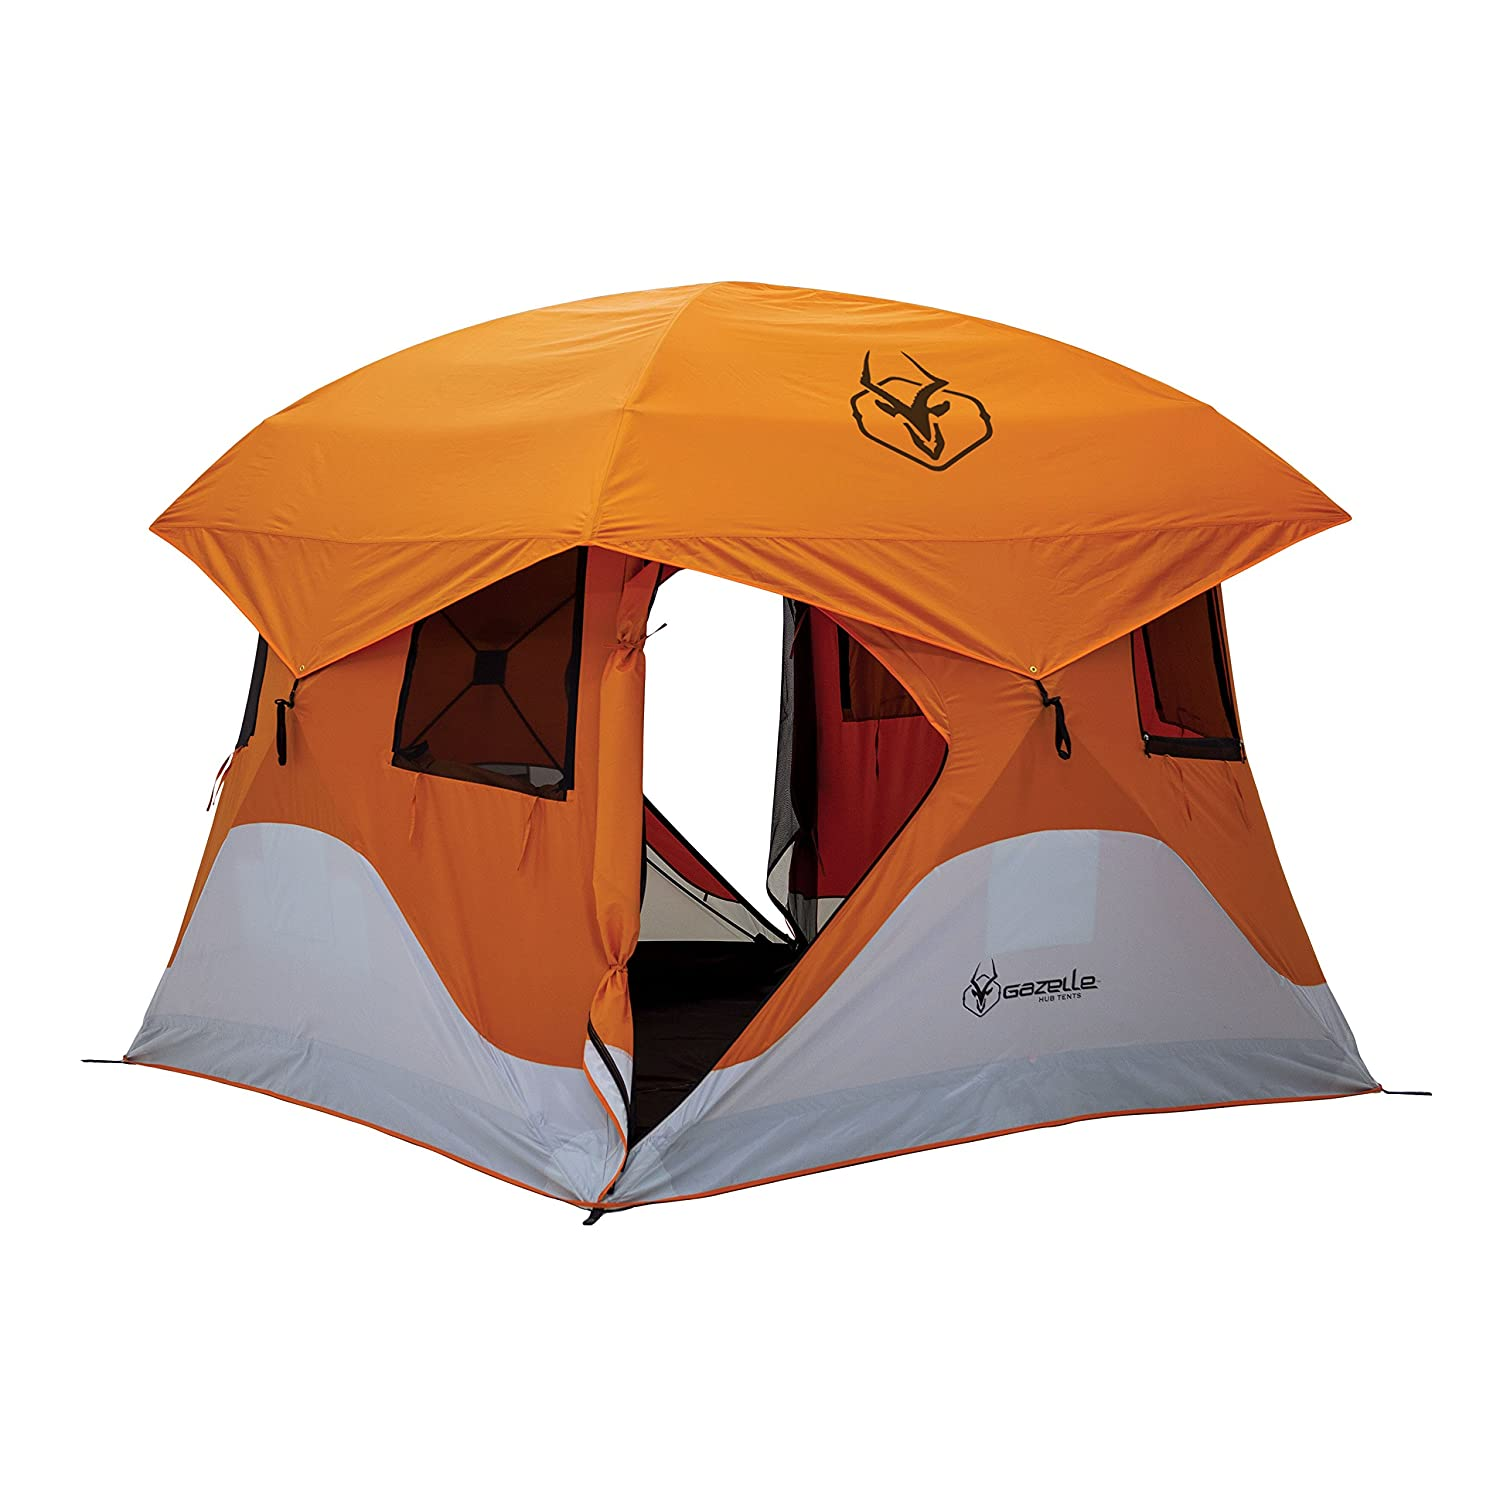 The Best Camping Tents with Screened Porch for Camping